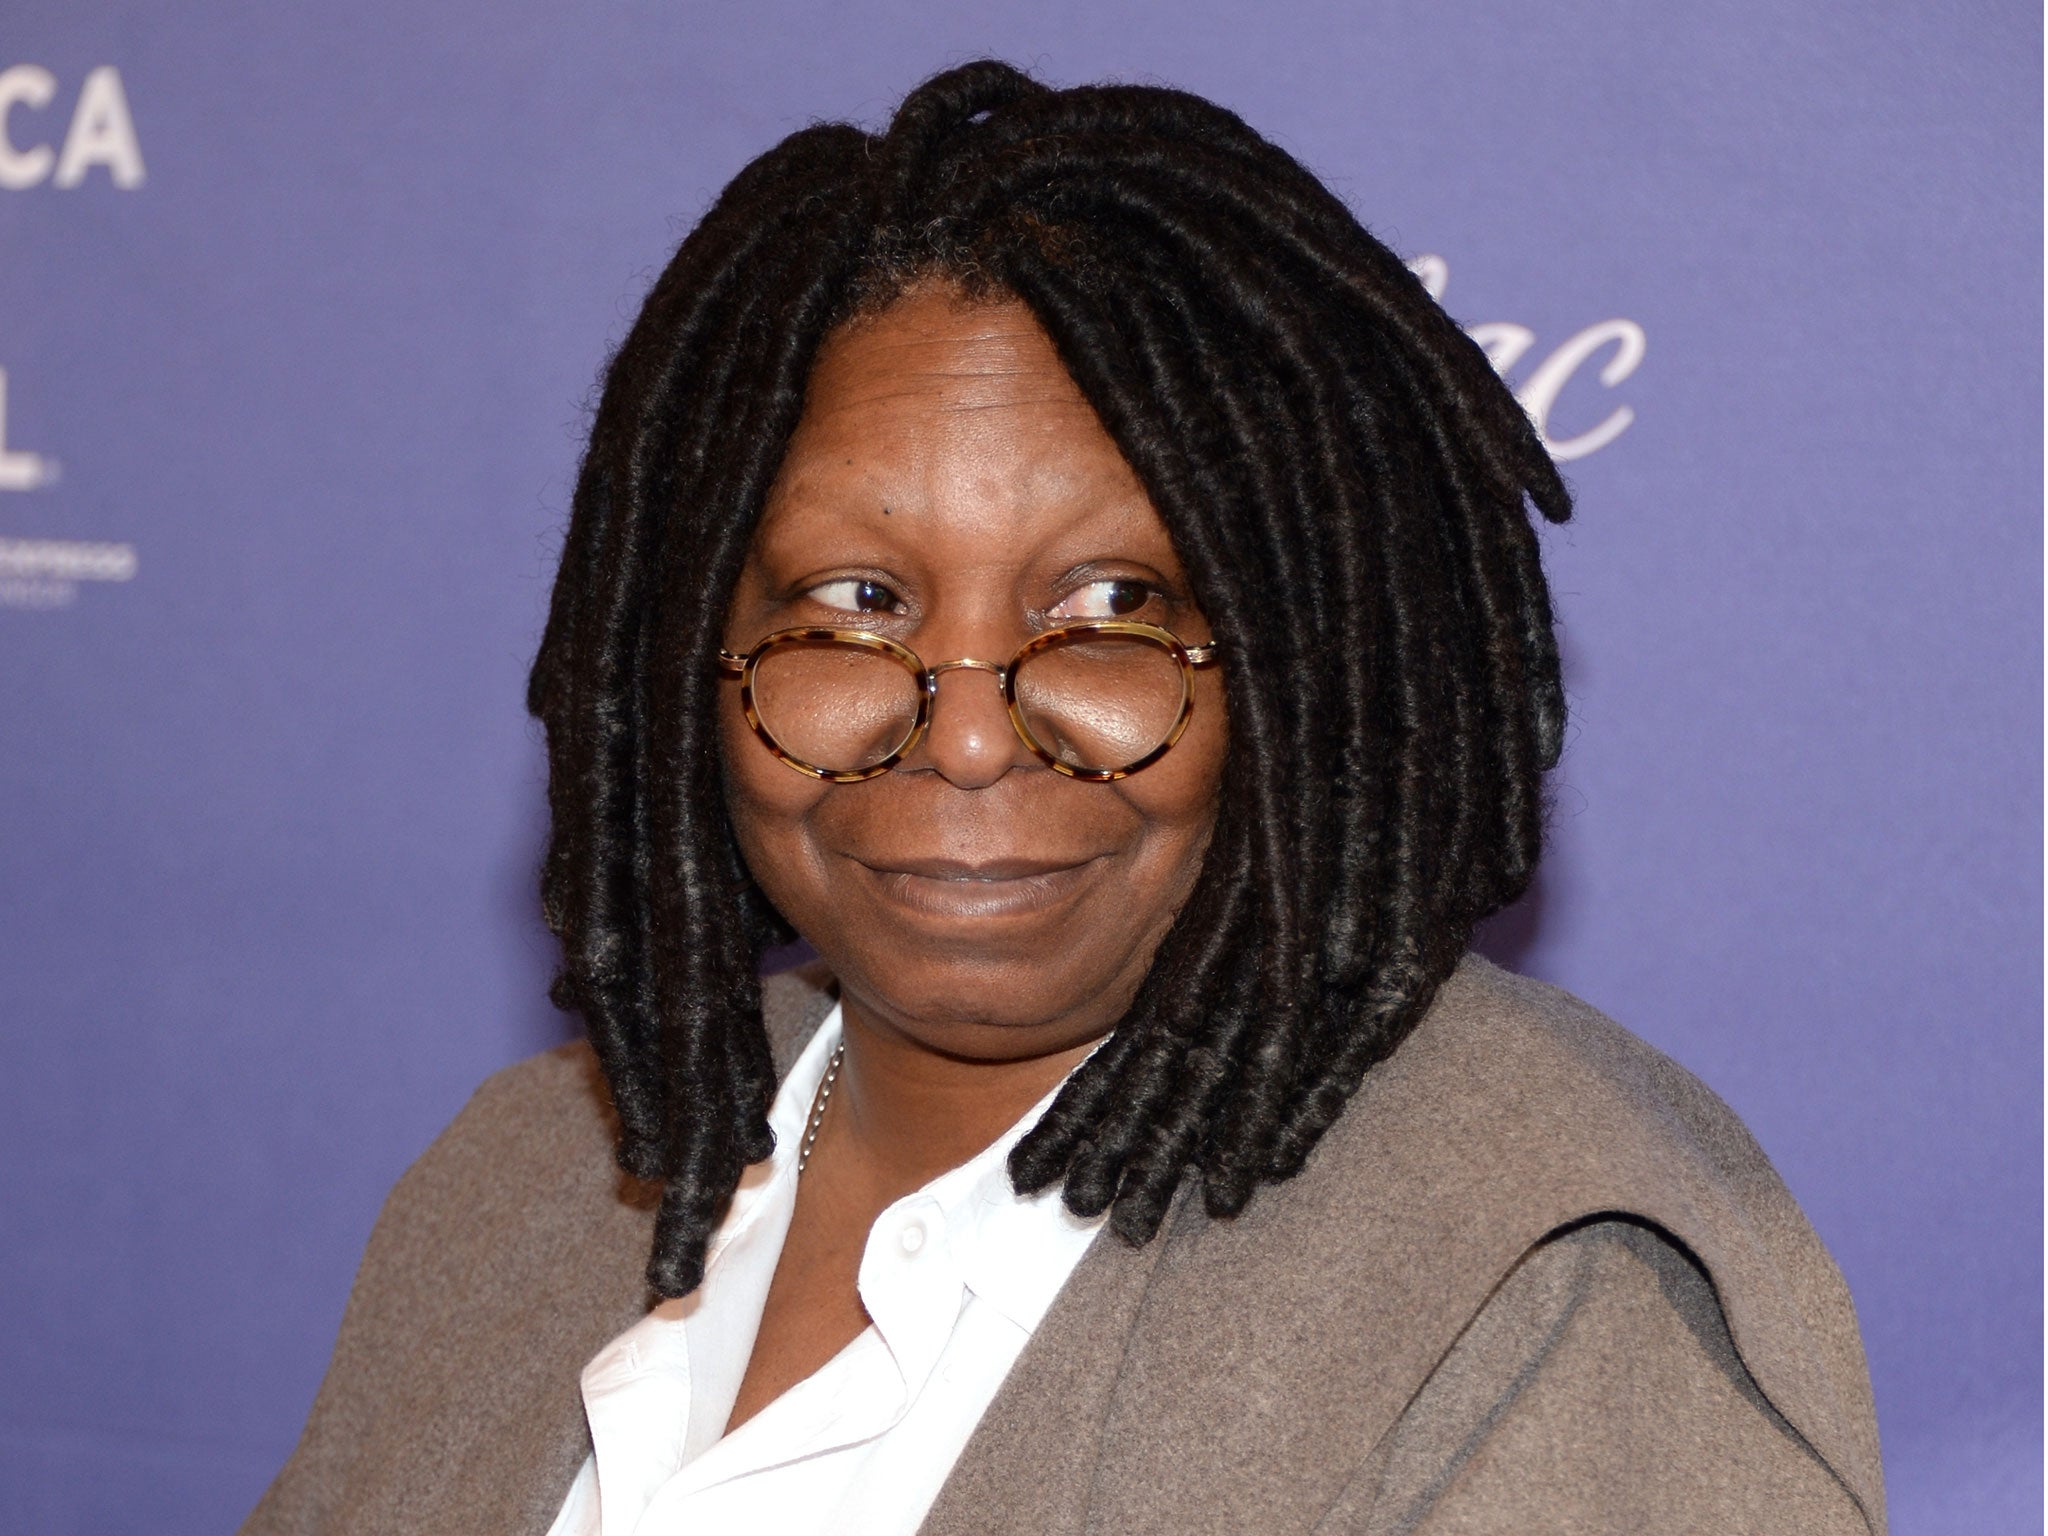 whoopi goldberg ghost